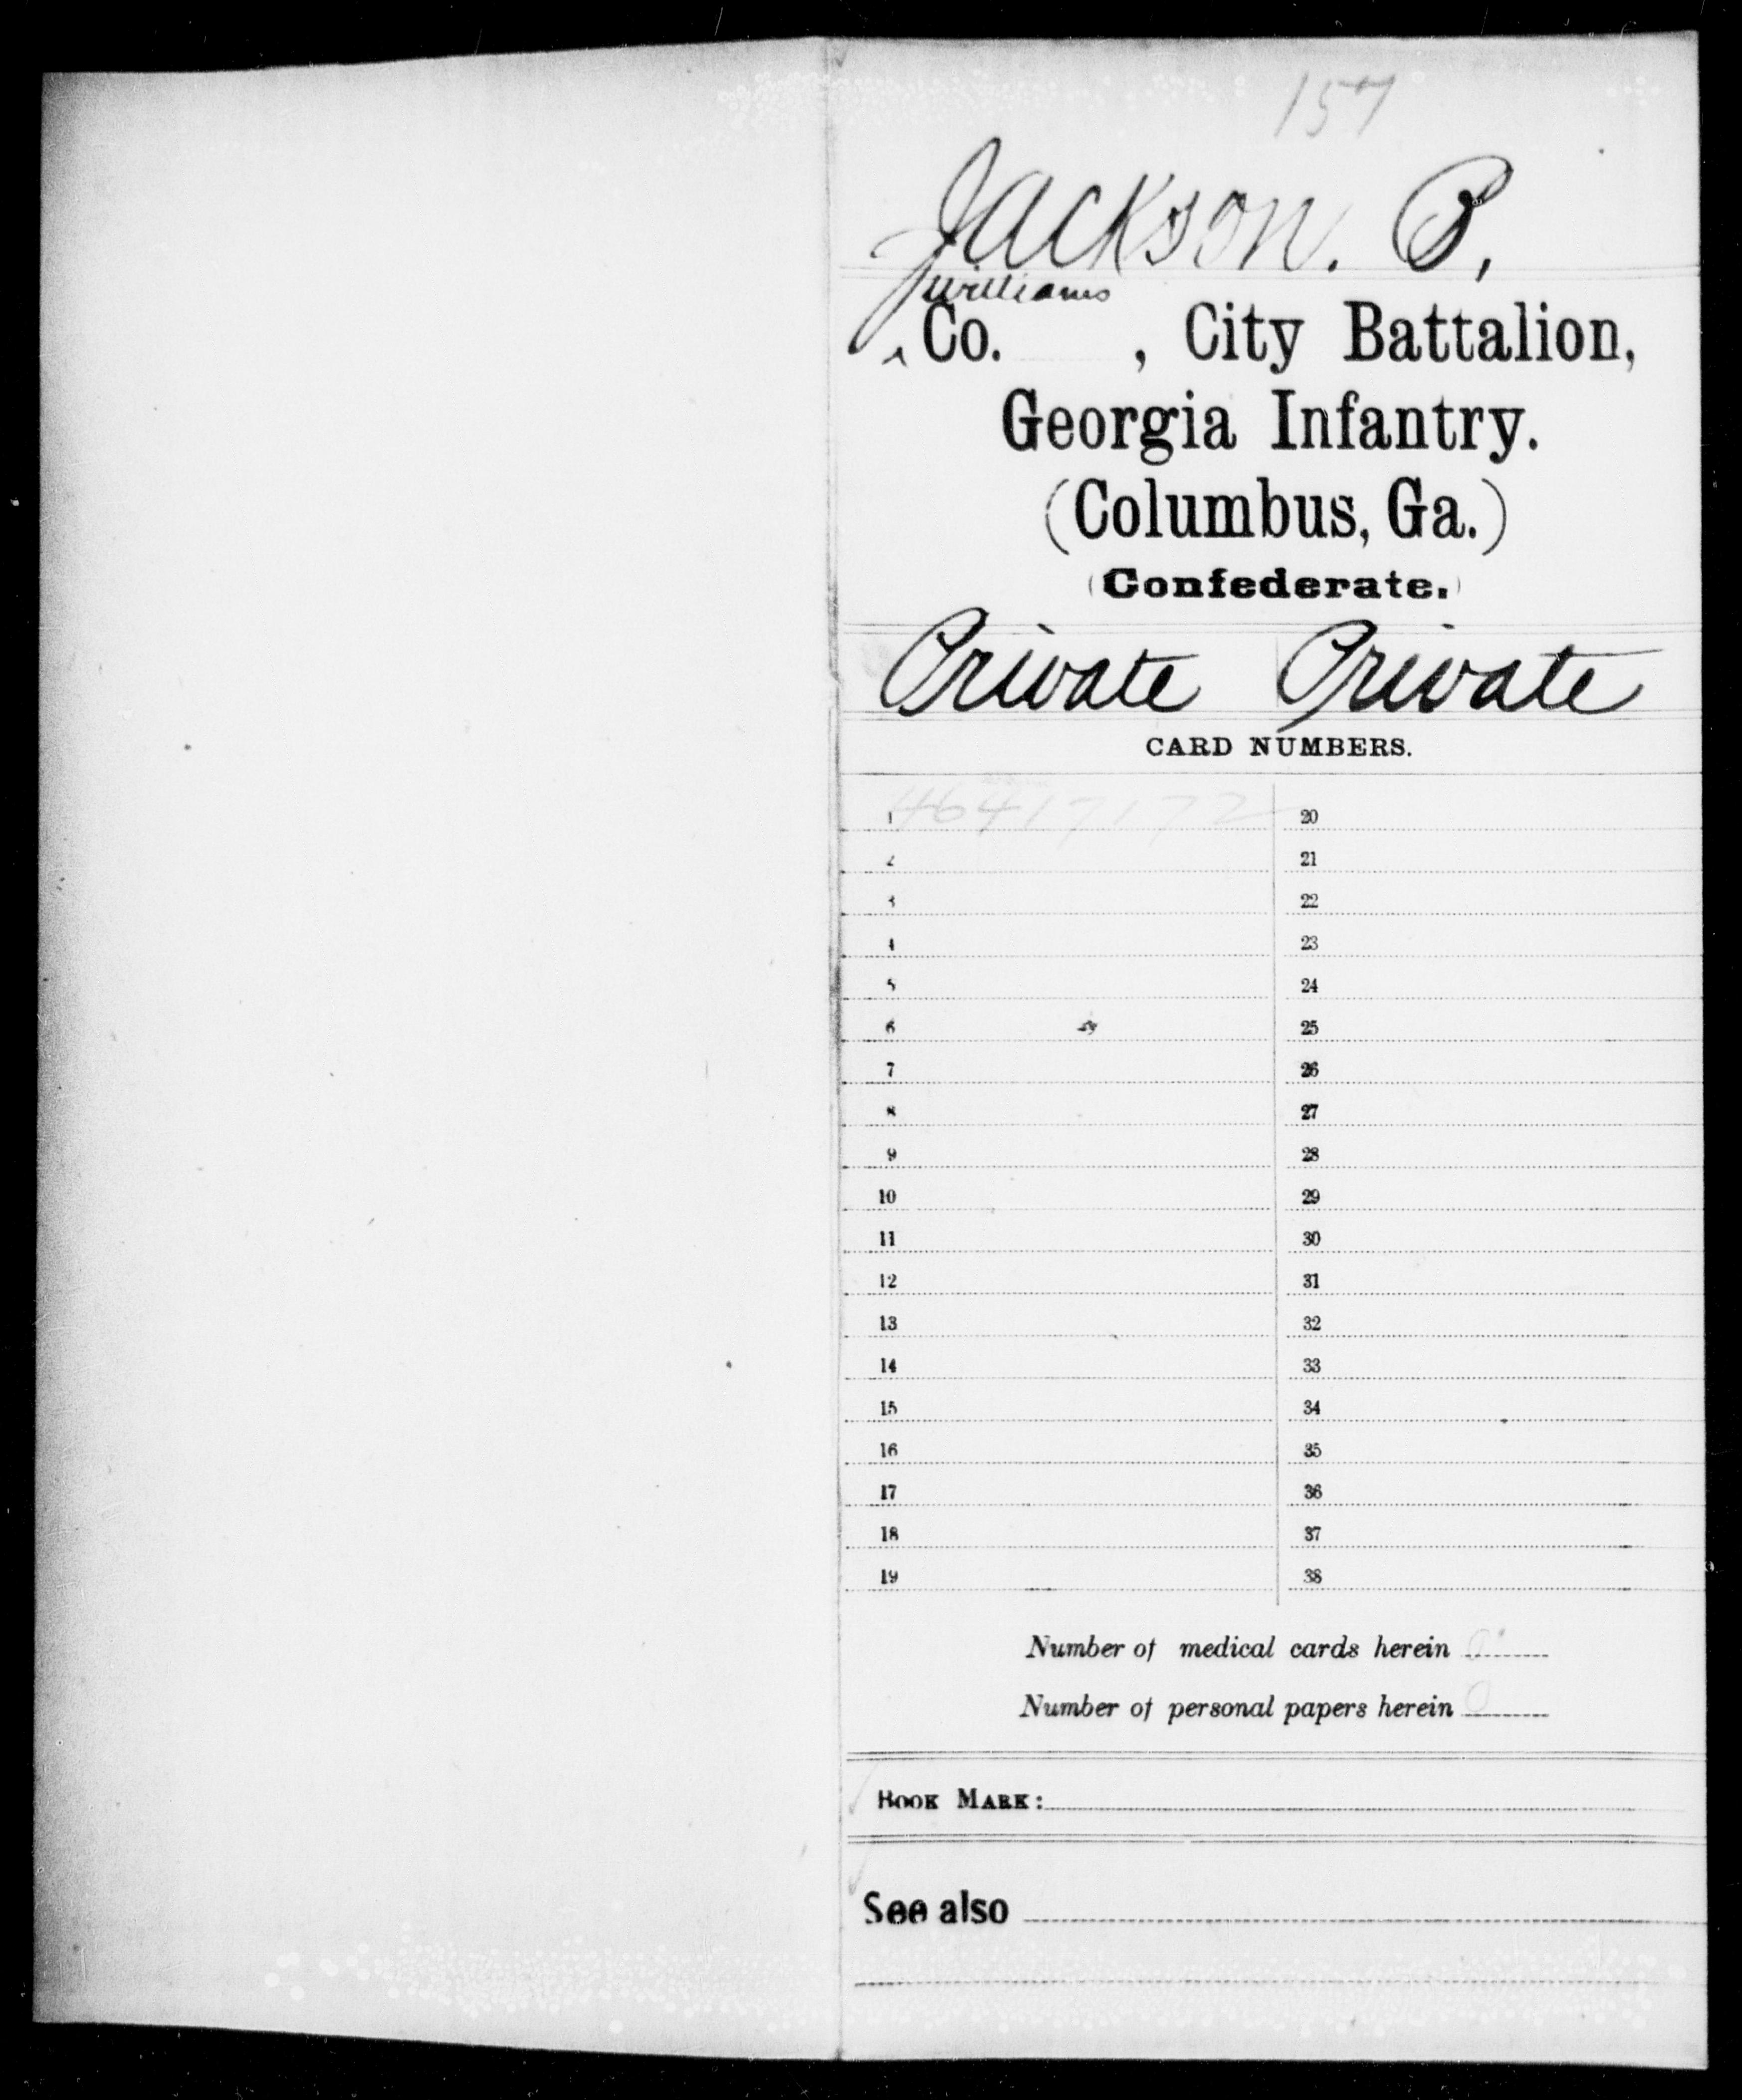 Confederate Soldiers from the State of Georgia - Jackson, B - Arsenal Battalion, Infantry (Columbus) AND Augusta Battalion, Infantry AND City Battalion, Infantry (Columbus) AND Coast Guard Battalion, Militia AND Cook's Battalion, Infantry (Reserves) AND Rowland's Battalion, Conscripts AND Youngblood's Battalion, Infantry AND Cobb's Guards, Infantry